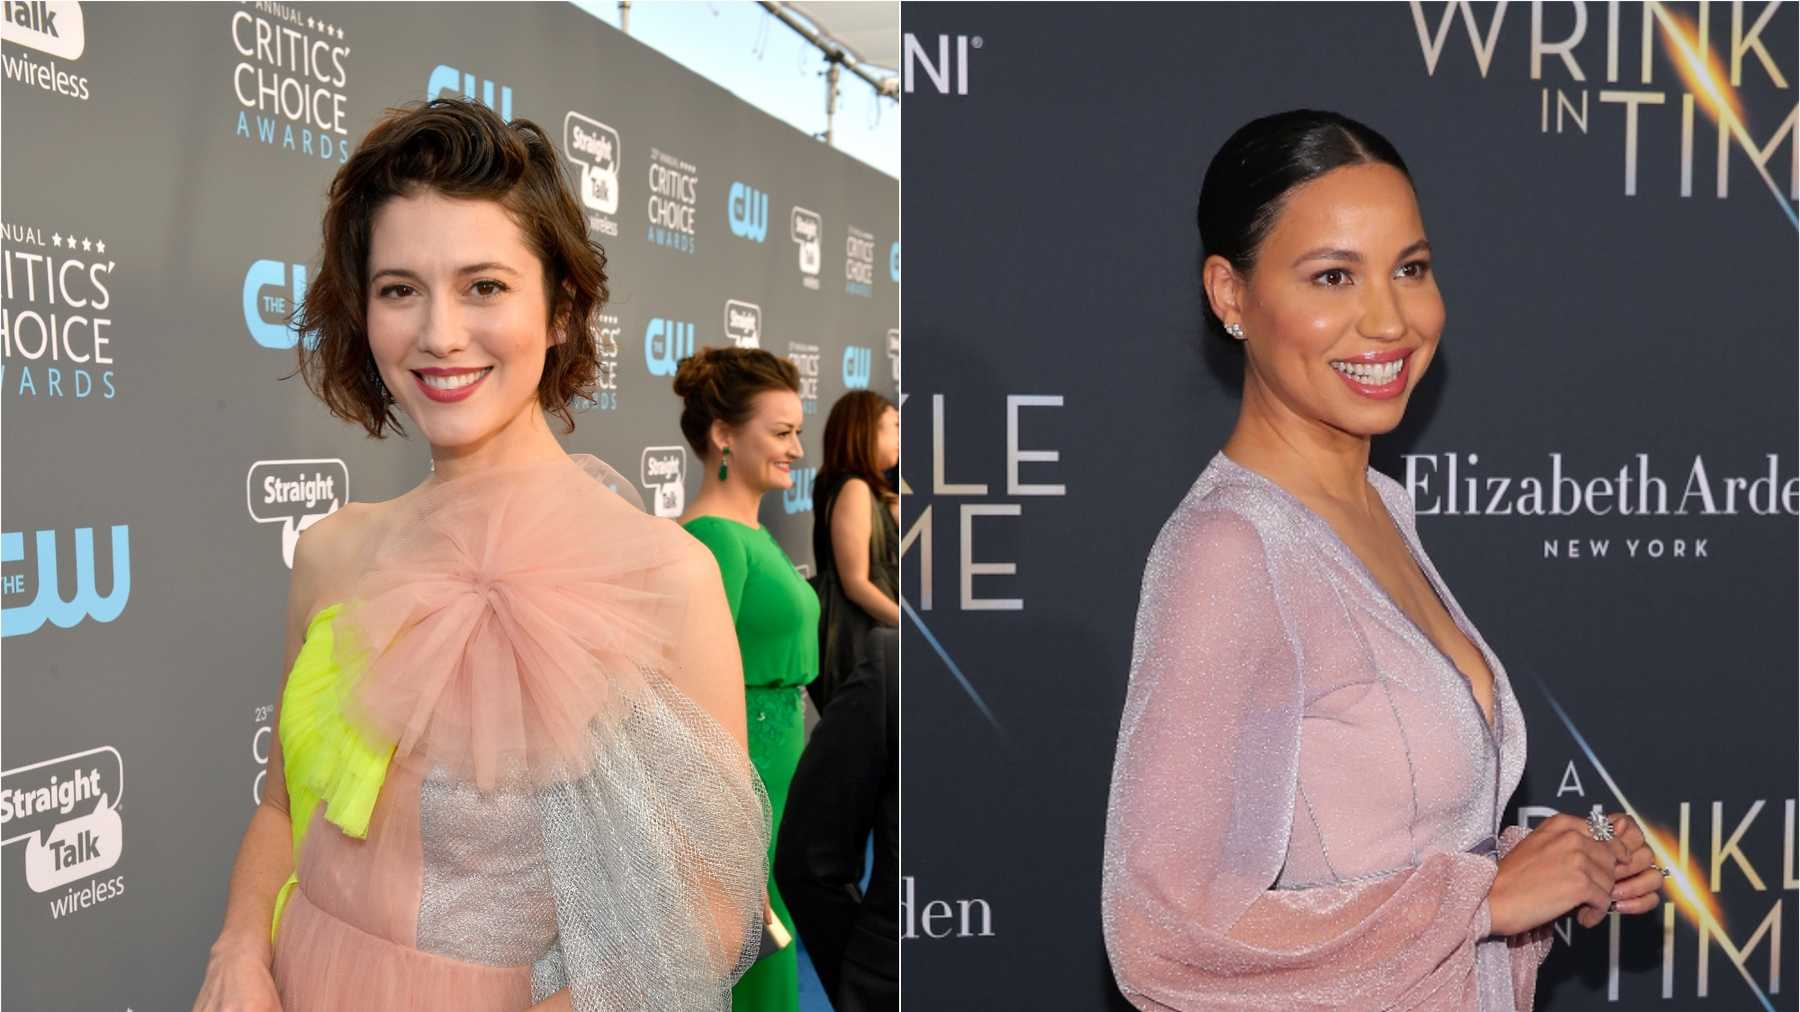 Mary Elizabeth Winstead And Jurnee Smollett Bell Land Roles In Birds Of Prey Movies Empire